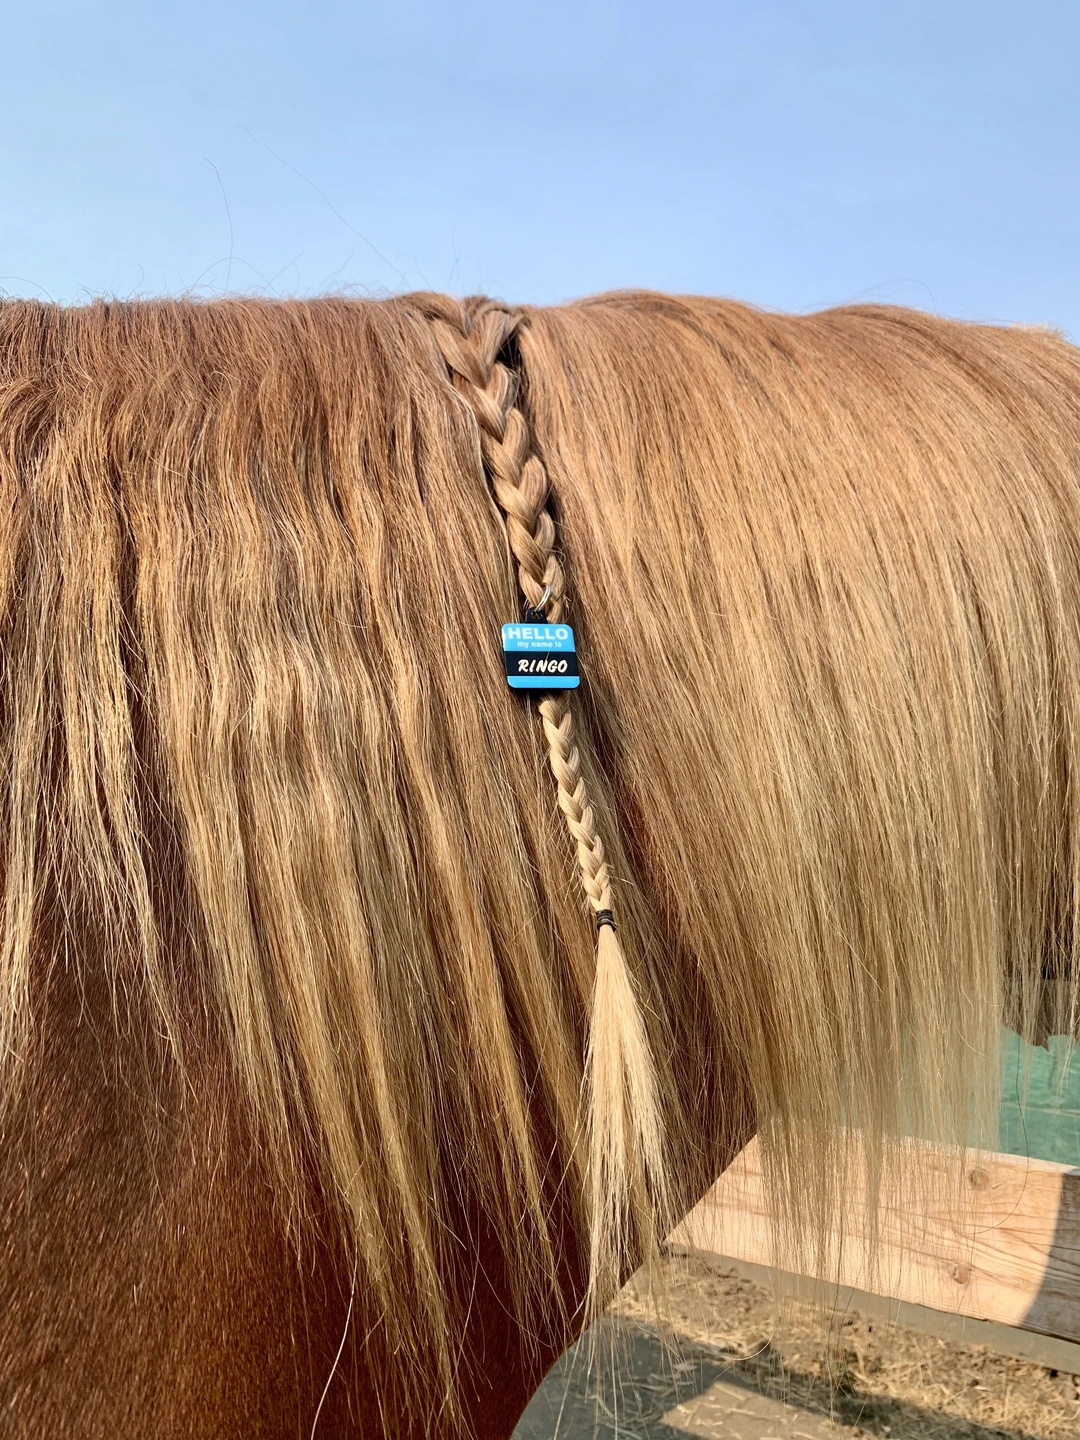 It's important that you braid your information into your horse's mane. I recommend going to a pet store and create a dog tag with your horse's information. Then, braid the tag into their mane using rubber bands. Image courtesy of Nicole Fava.